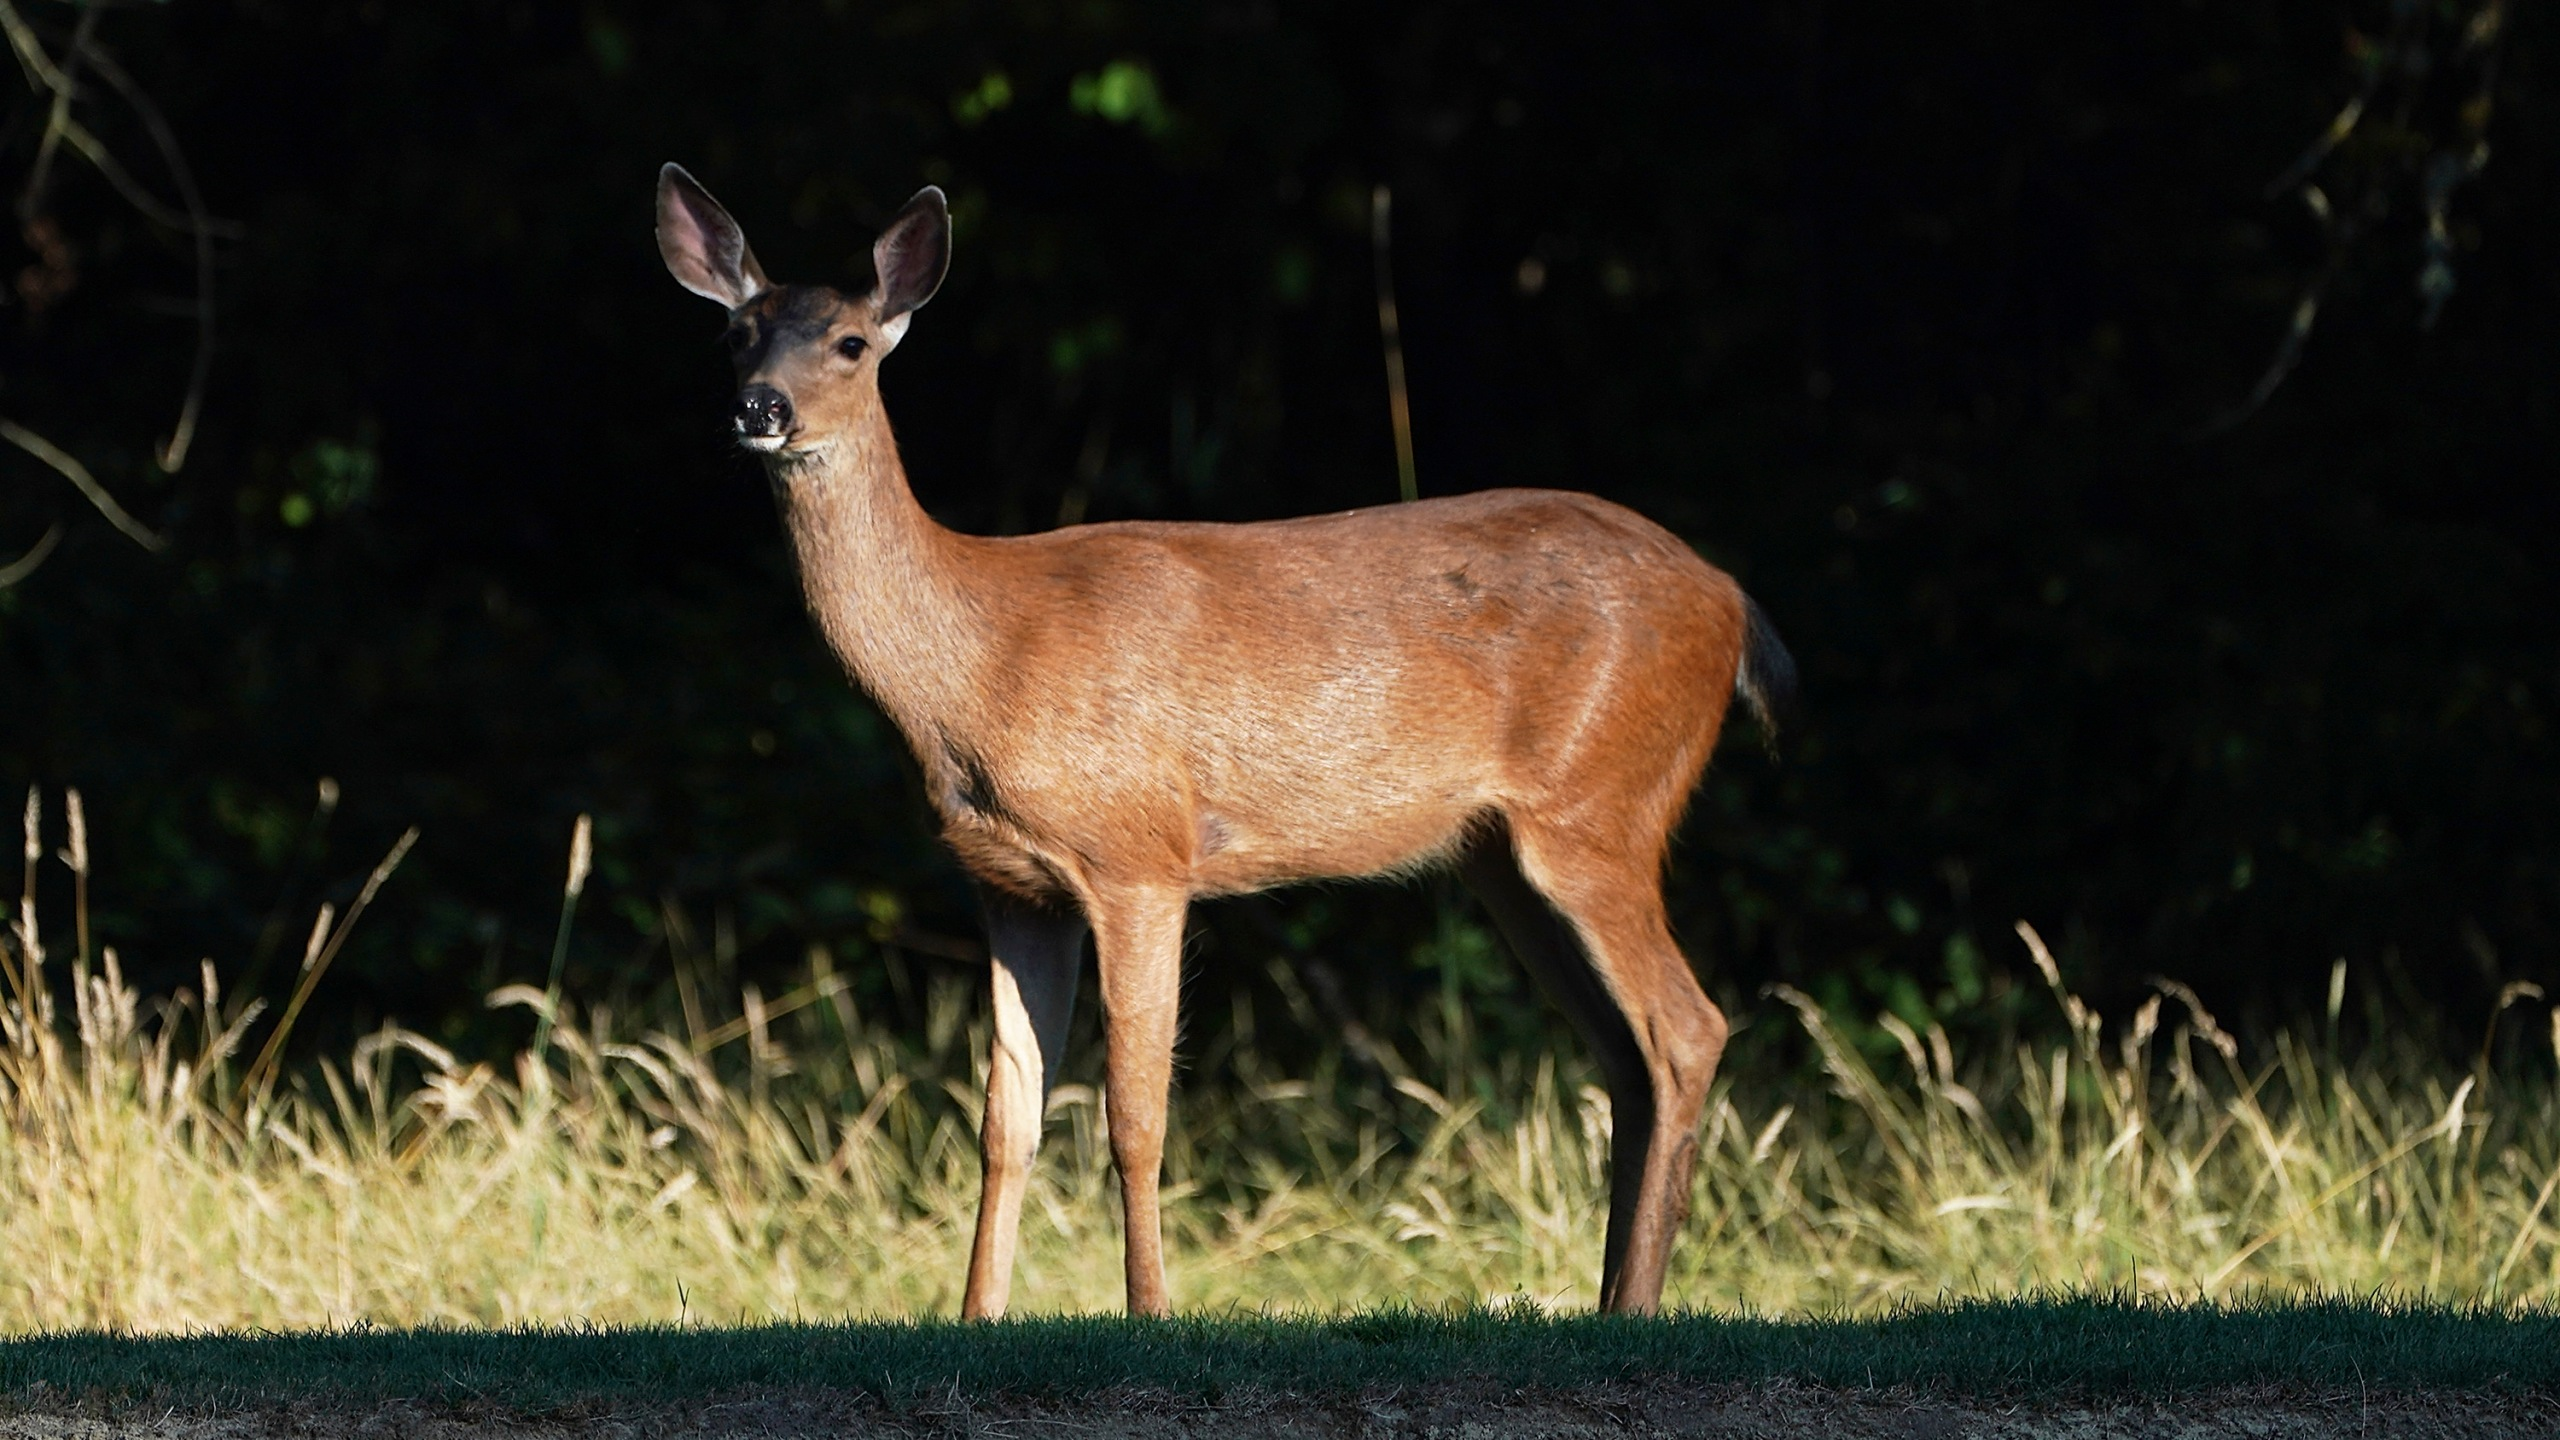 A deer wanders along the fairway on the 14th hole during the third round of the WinCo Foods Portland Open on August 18, 2018 in Portland, Oregon. (Credit: Steve Dykes/Getty Images)